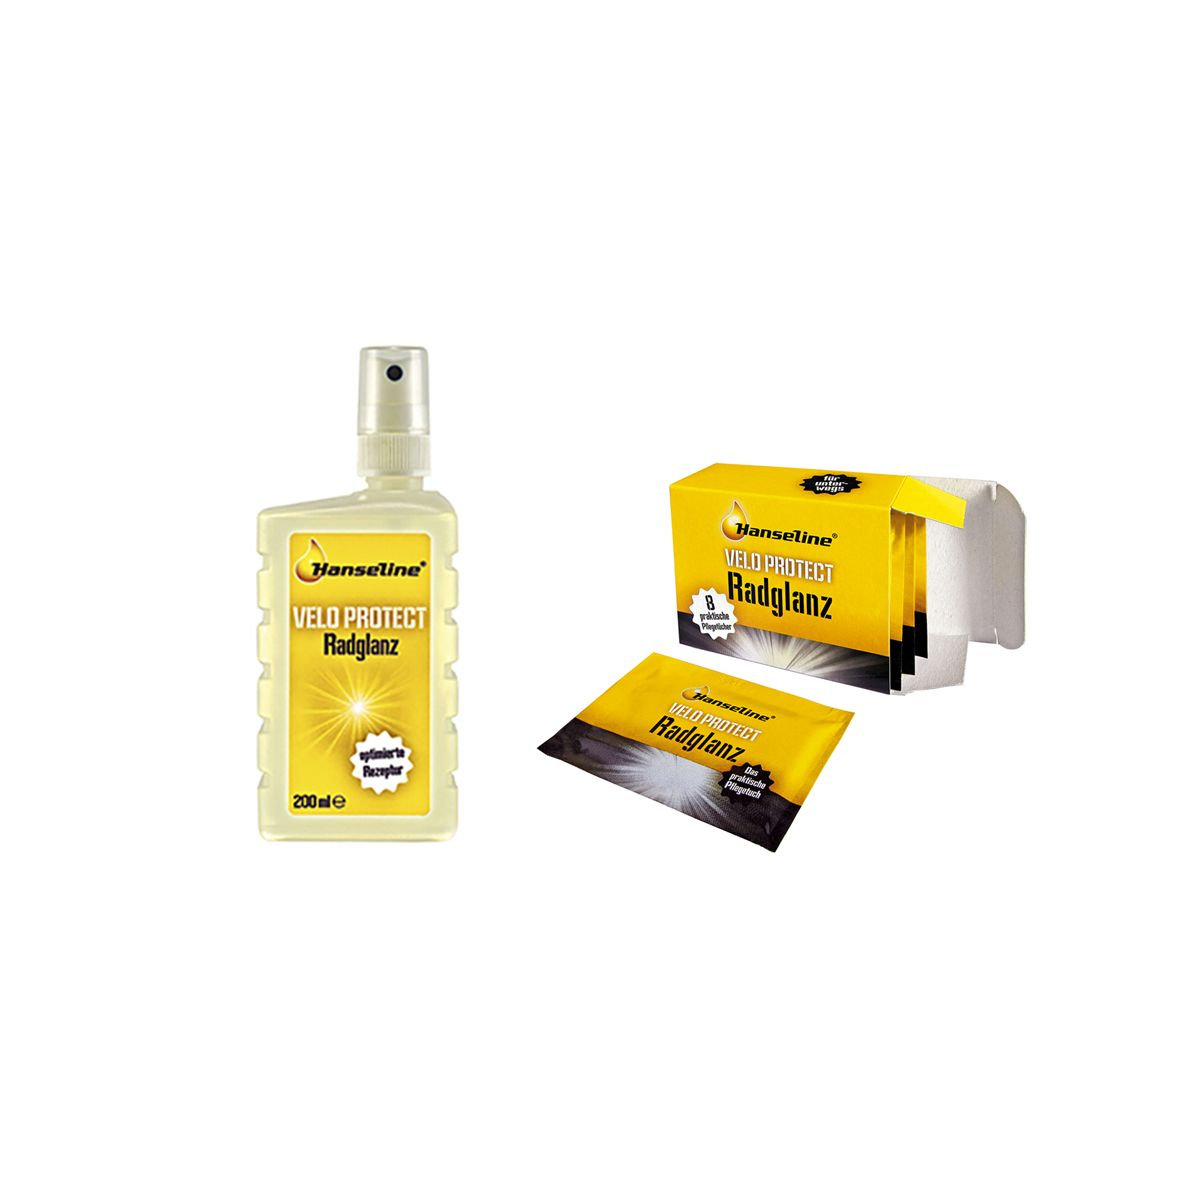 Hanseline Velo Protect Radglanz bike cleaner | polish_and_lubricant_component